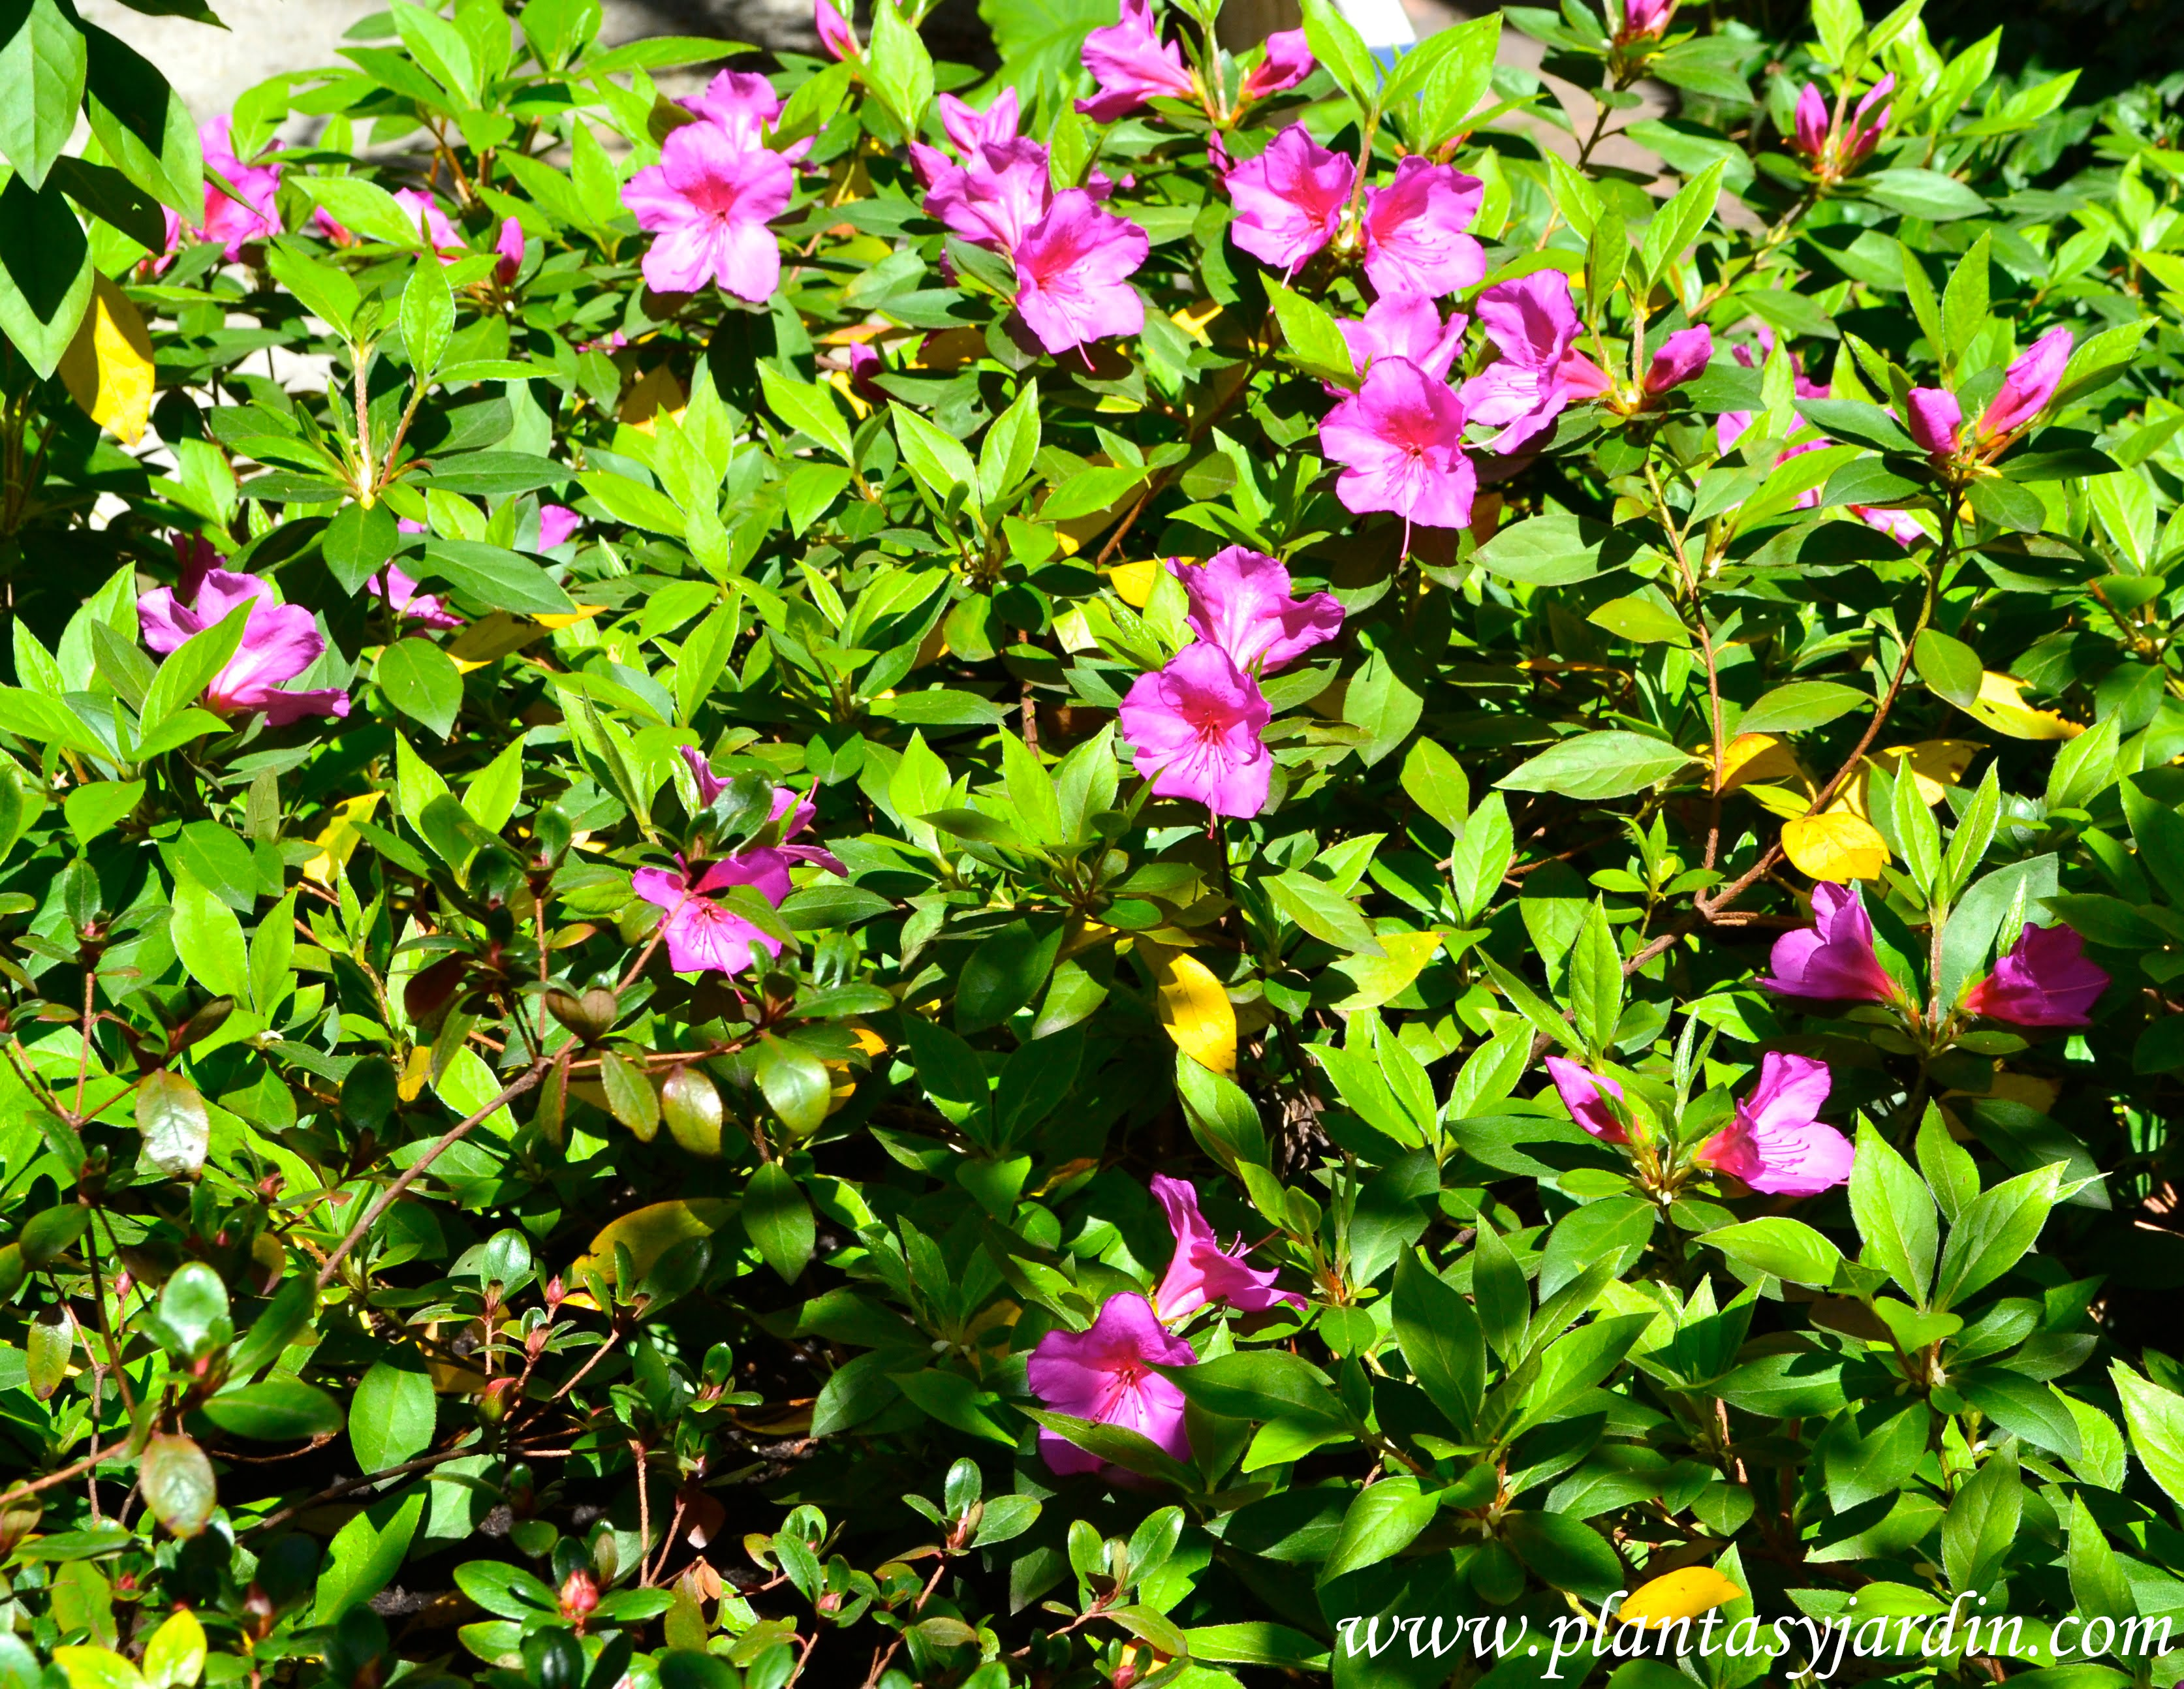 Azalea simple plantas jard n for Arbustos ornamentales para jardin